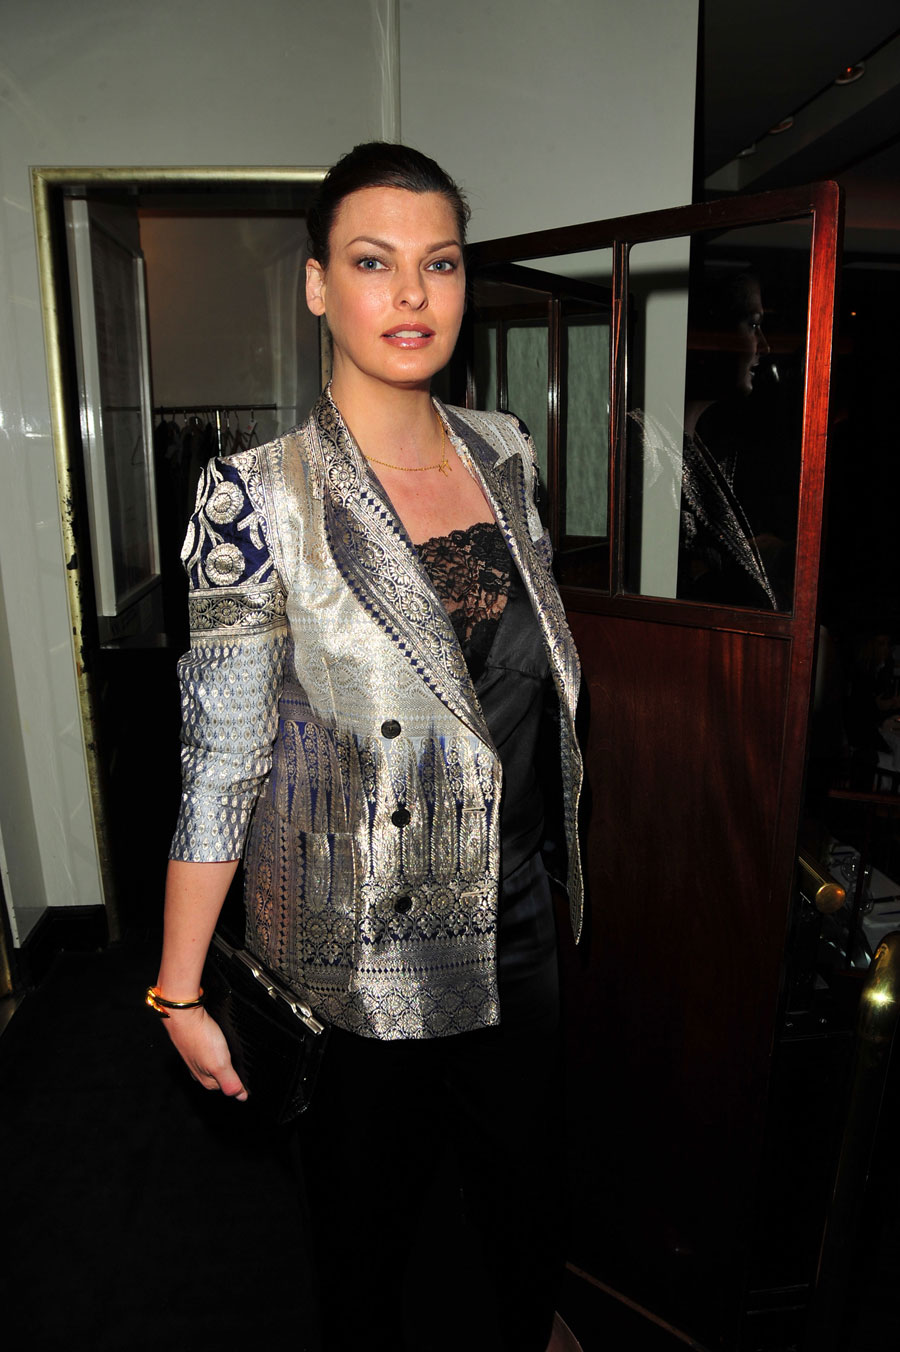 linda evangelista sexy in silver and lace photo huffpost. Black Bedroom Furniture Sets. Home Design Ideas